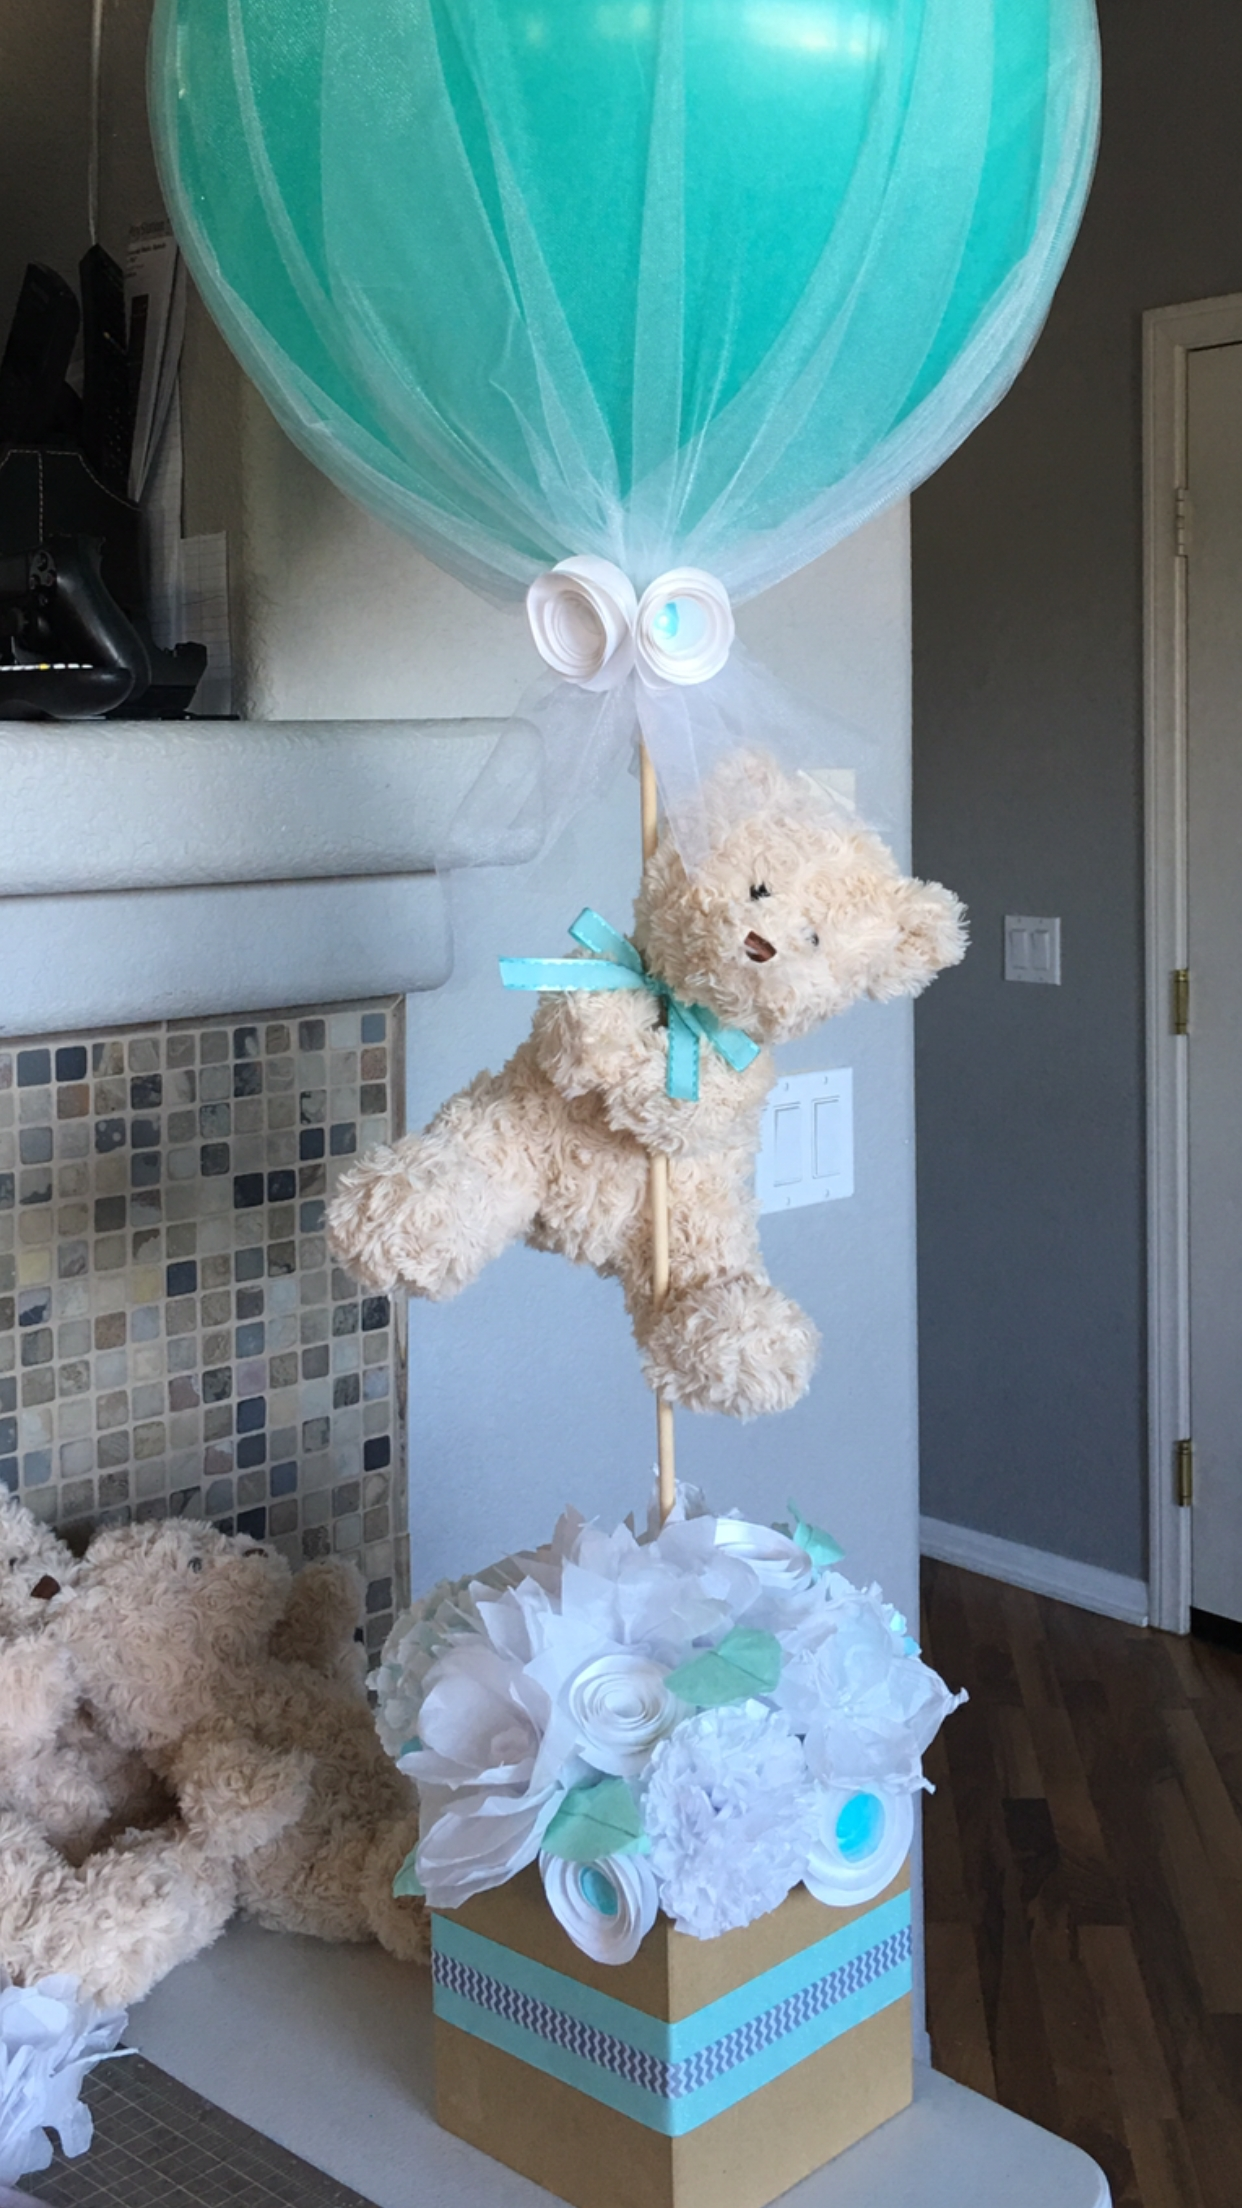 10 gender reveal party food ideas for your family | babies